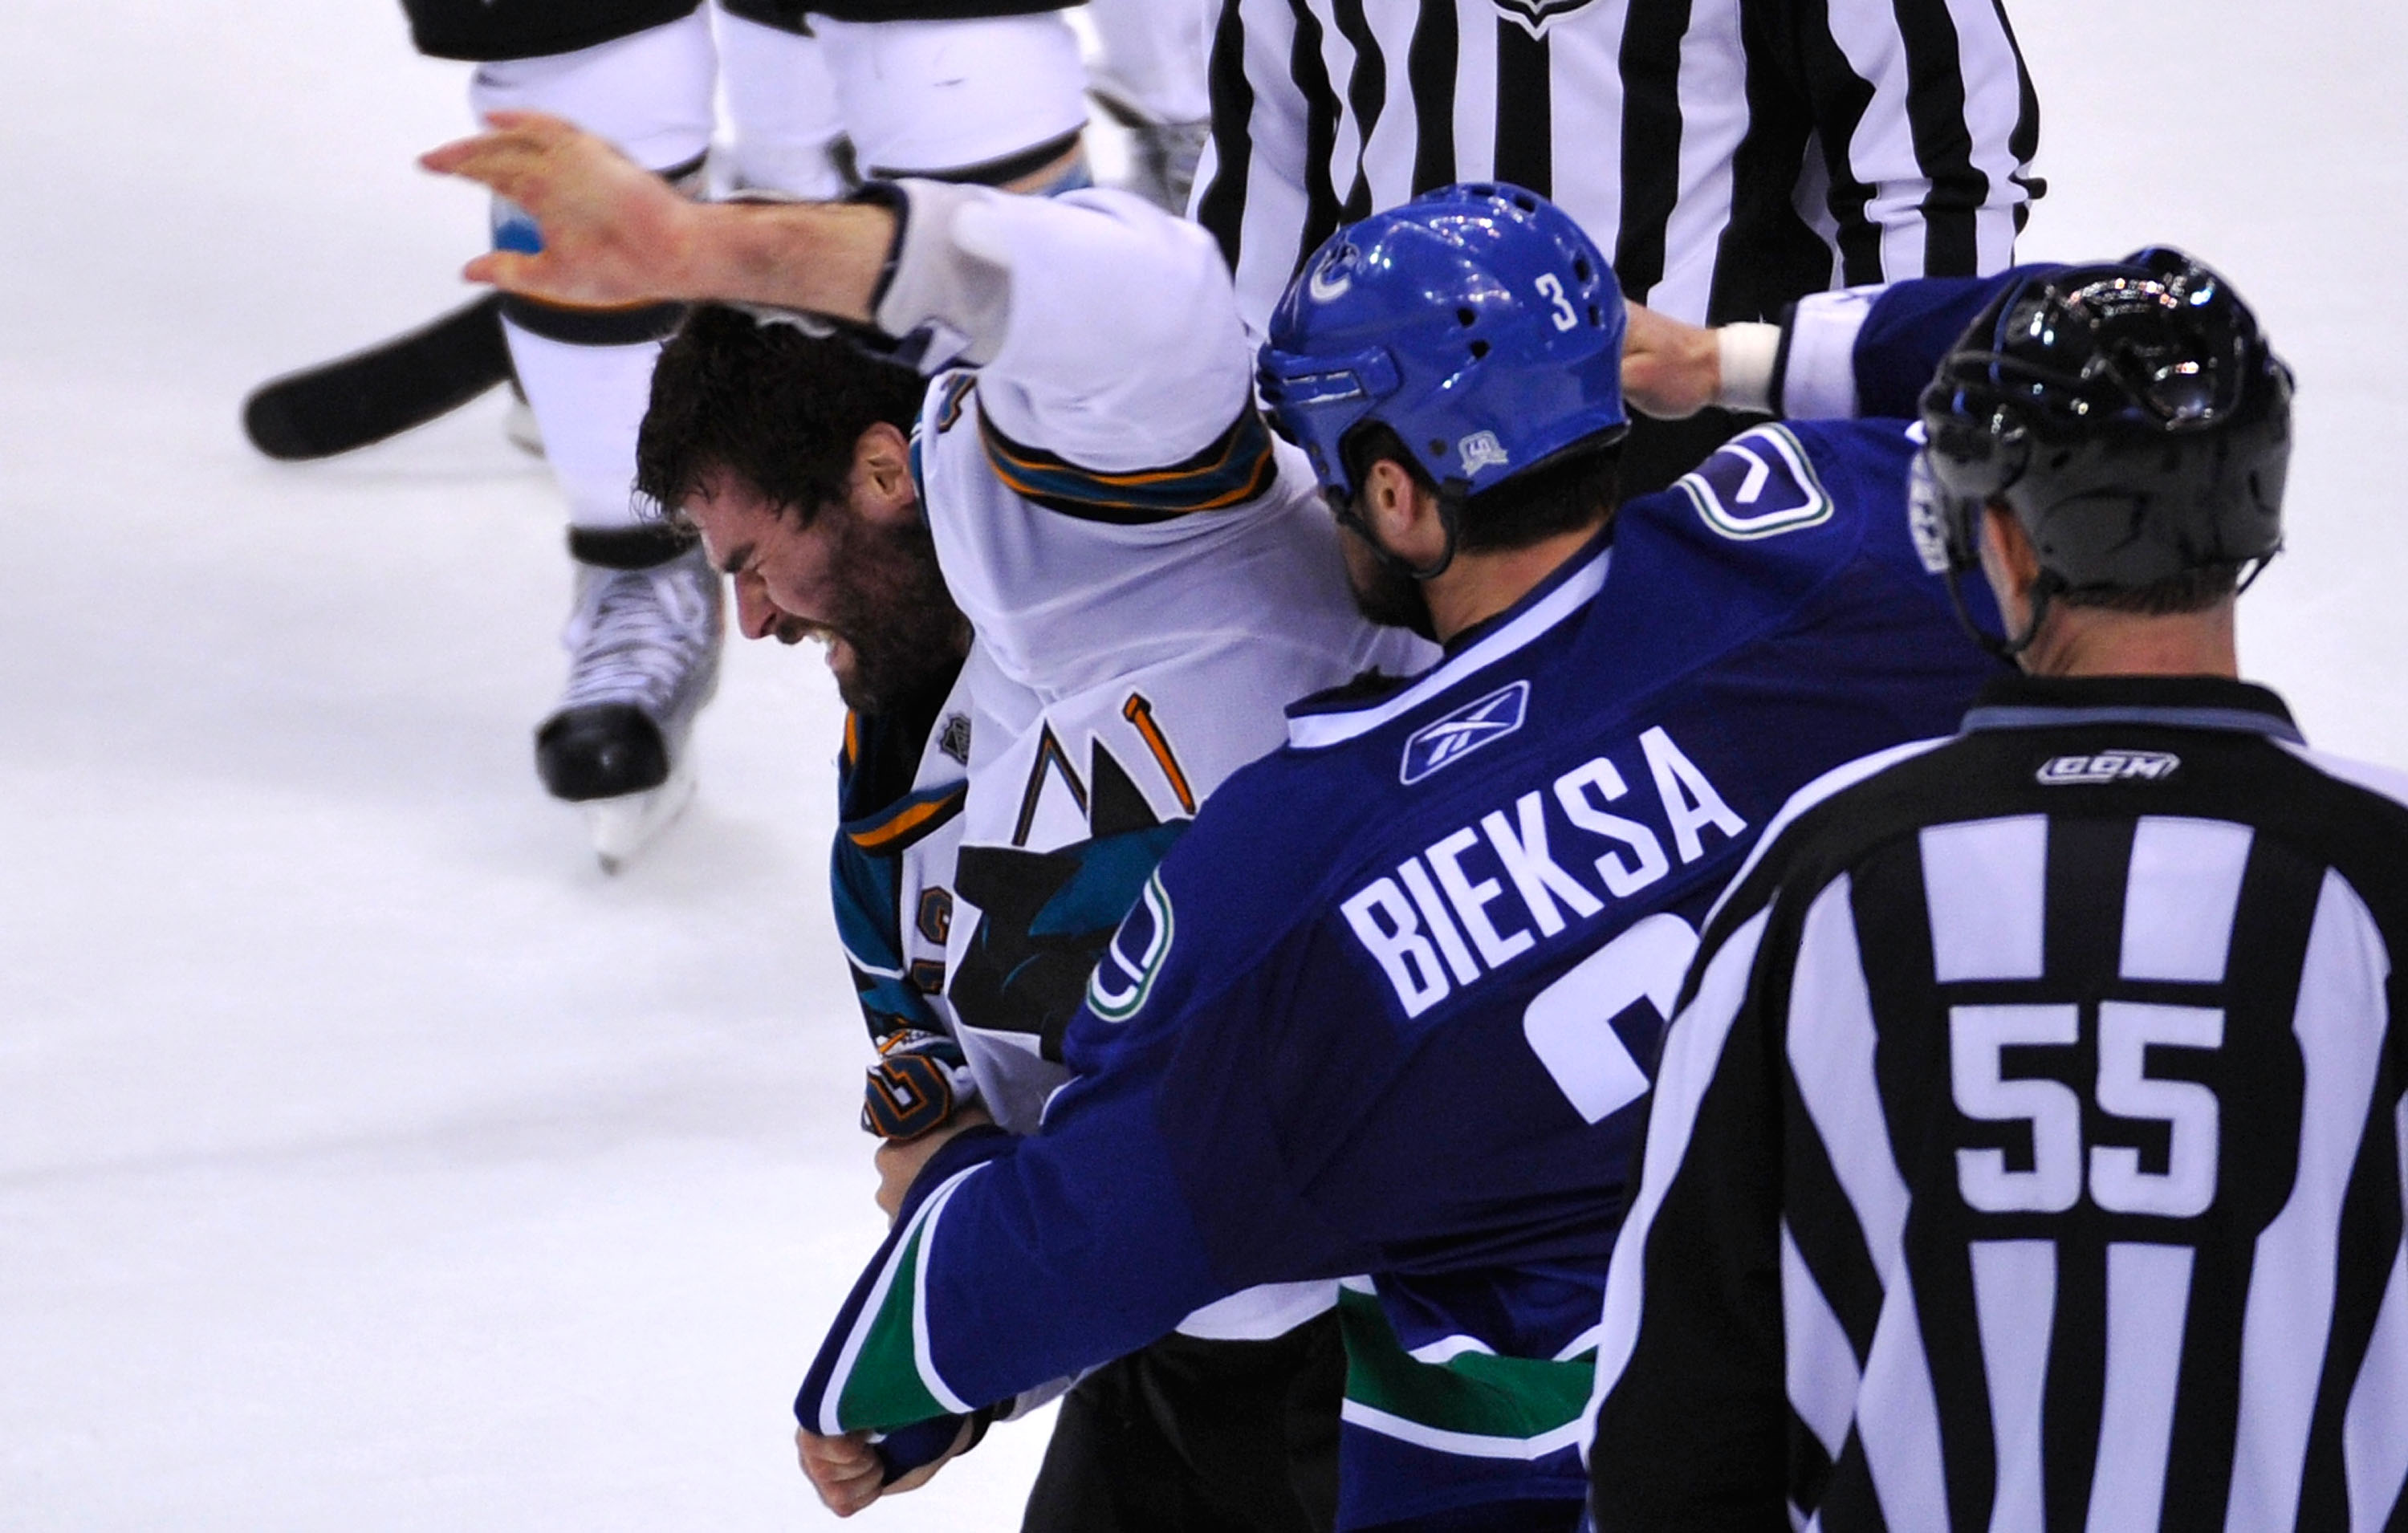 VANCOUVER, CANADA - MAY 18:  Patrick Marleau #12 of the San Jose Sharks tries to defend himself during a fight as Kevin Bieksa #3 of the Vancouver Canucks prepares to throw a punch in the second period in Game Two of the Western Conference Finals during t